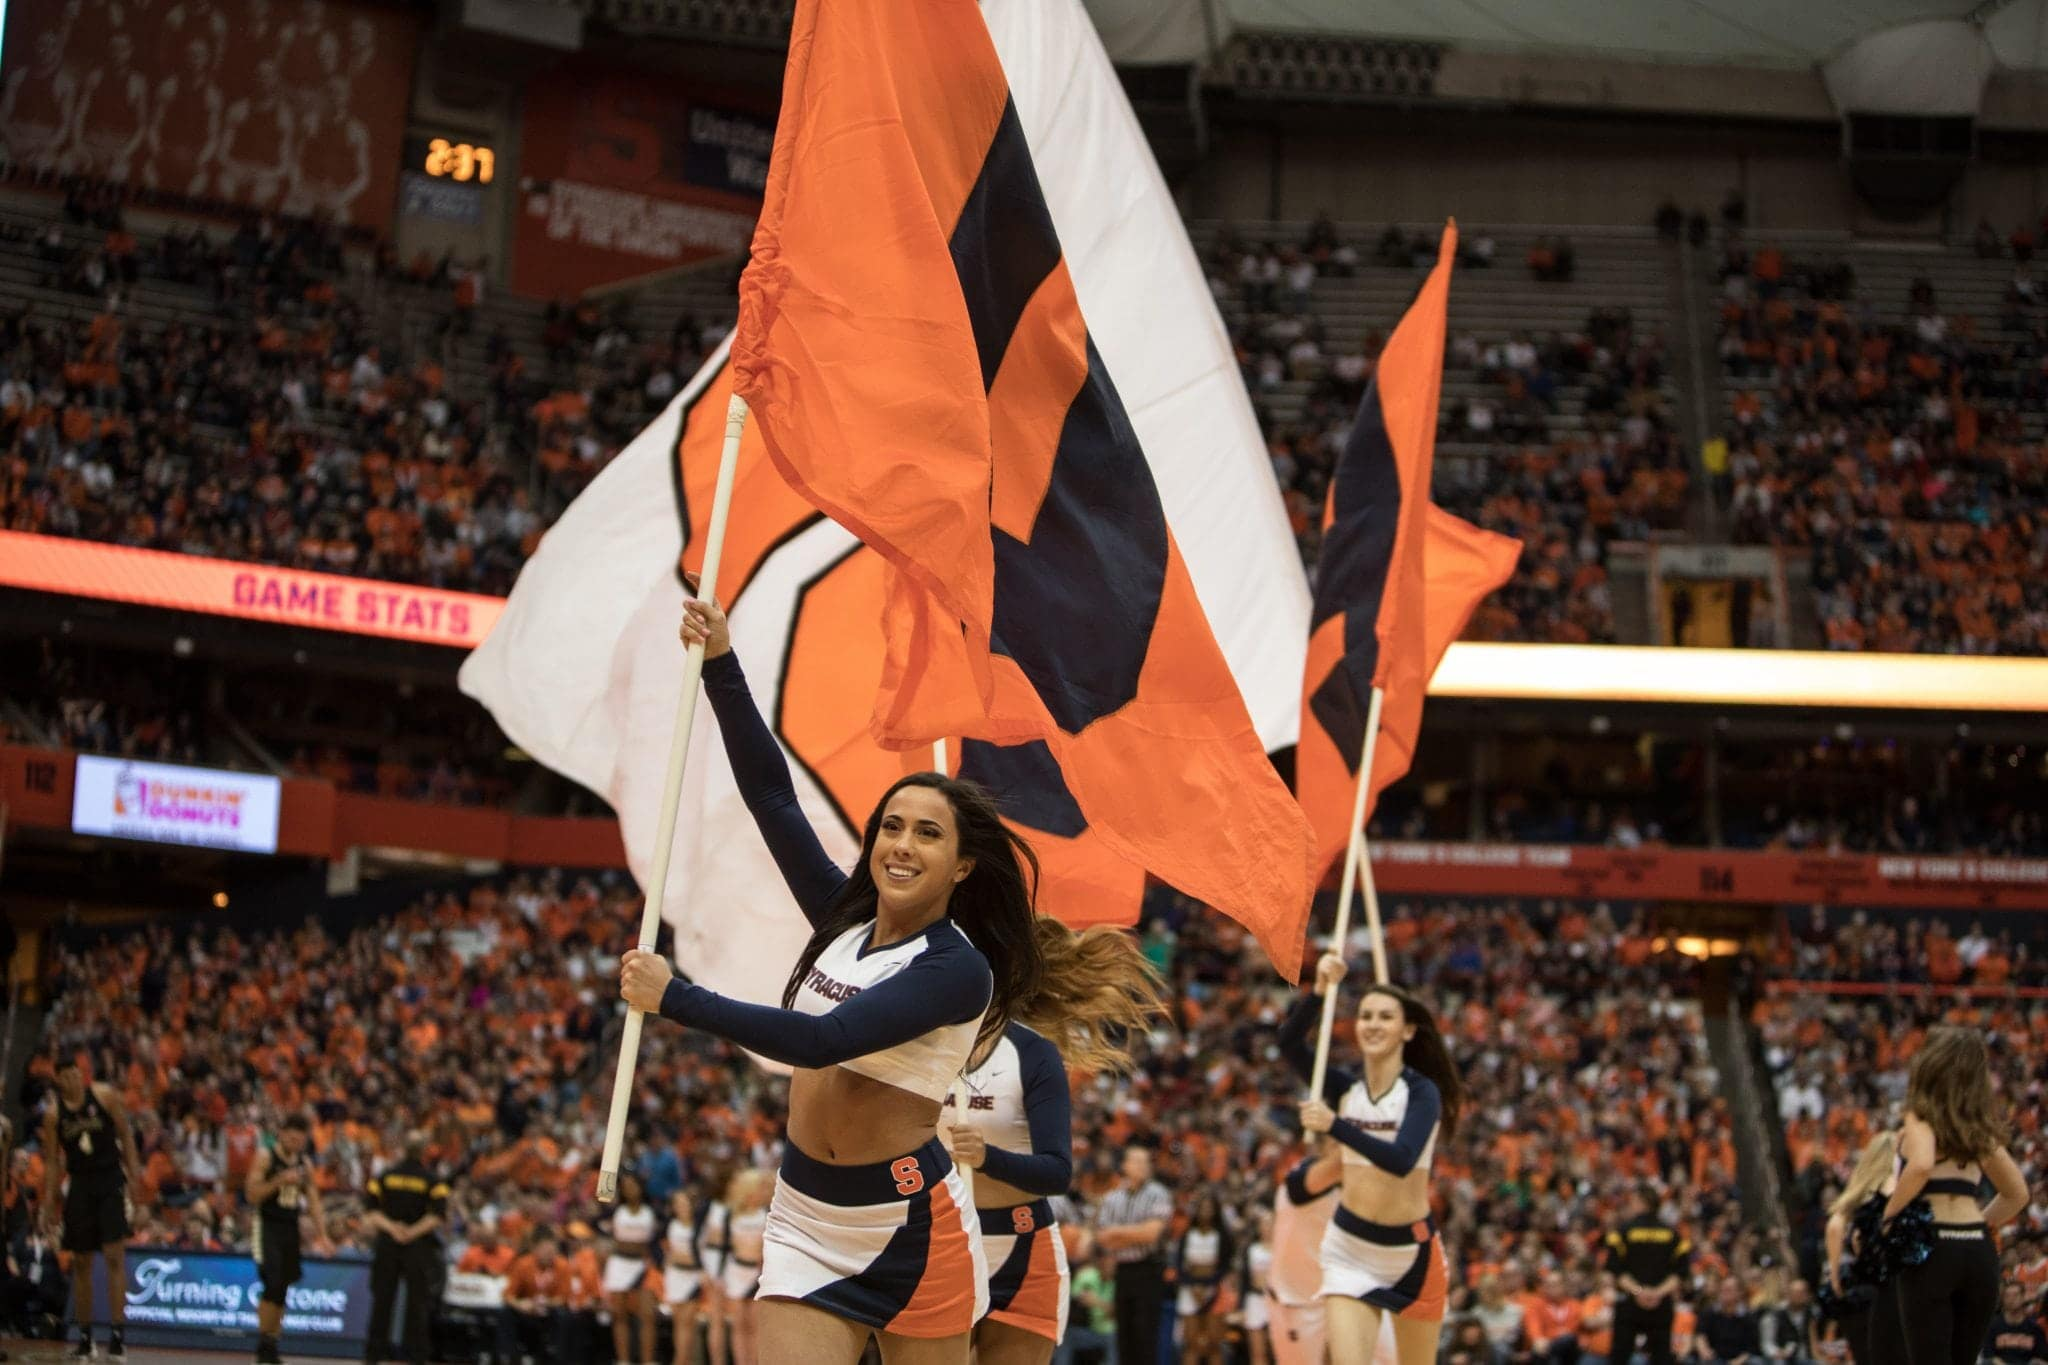 Syracuse cheerleaders carry the flags during the Wake Forest game